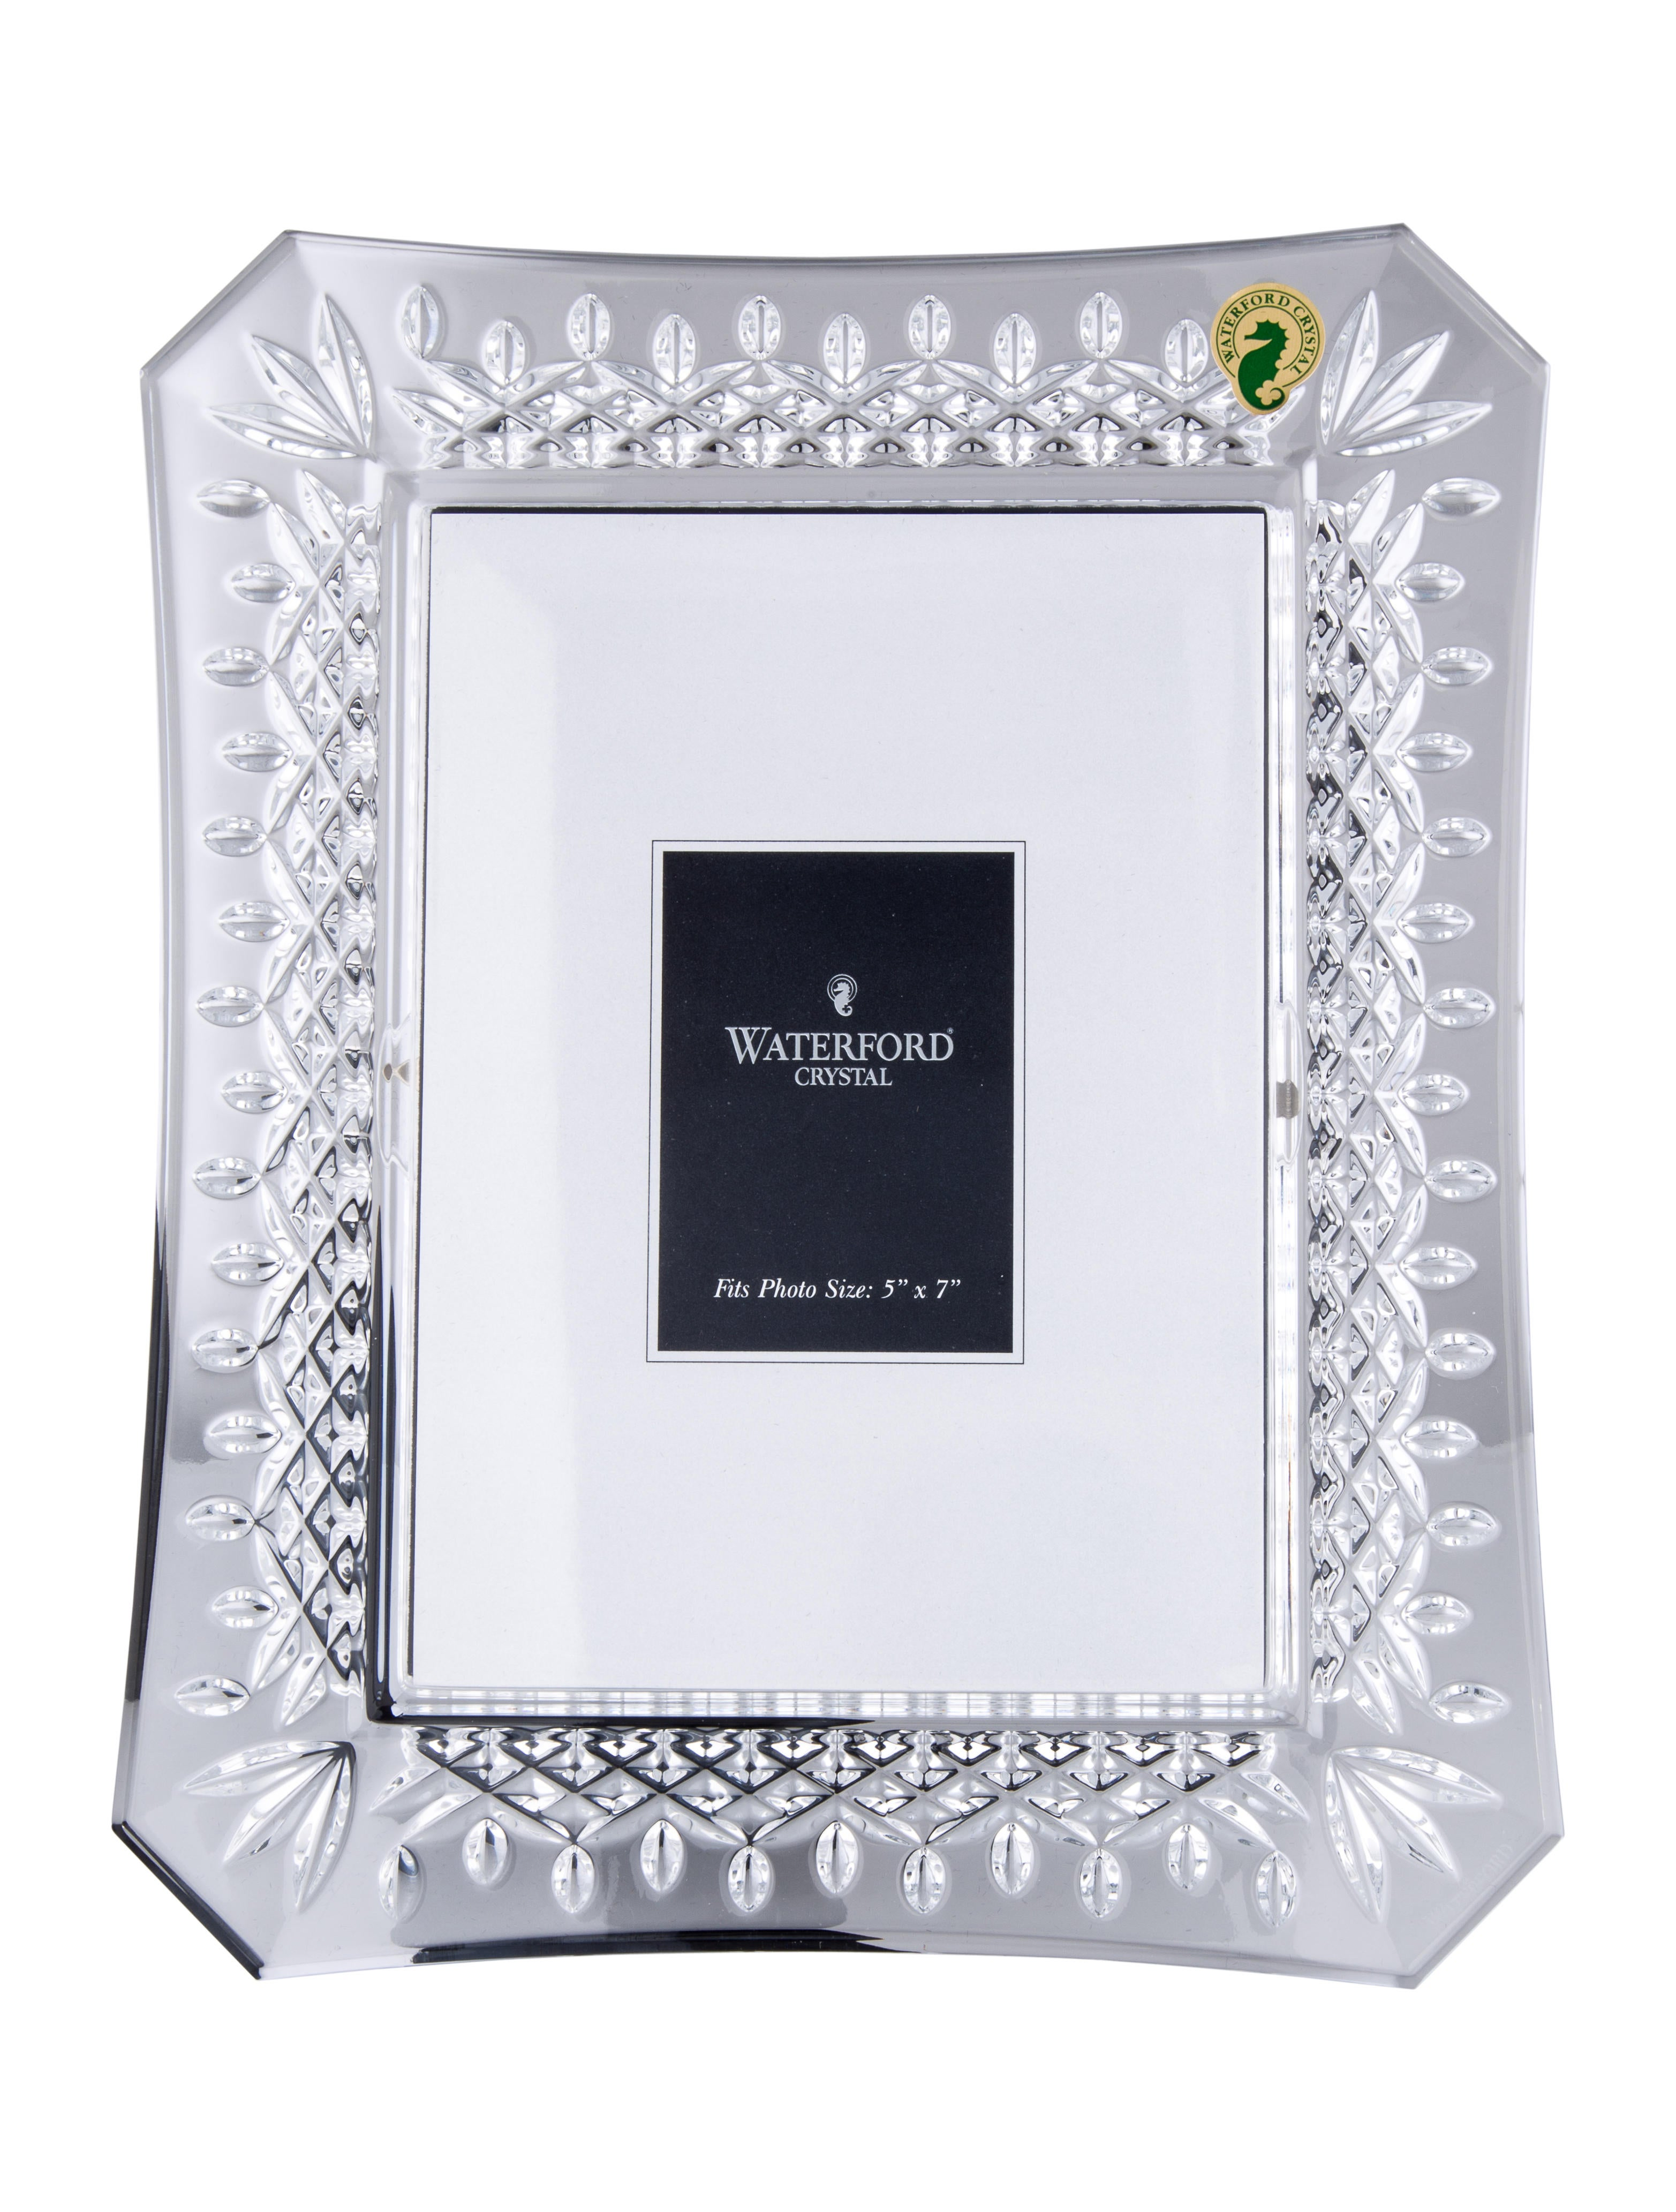 Waterford Crystal Crystal Lismore Frame - Decor And Accessories ...